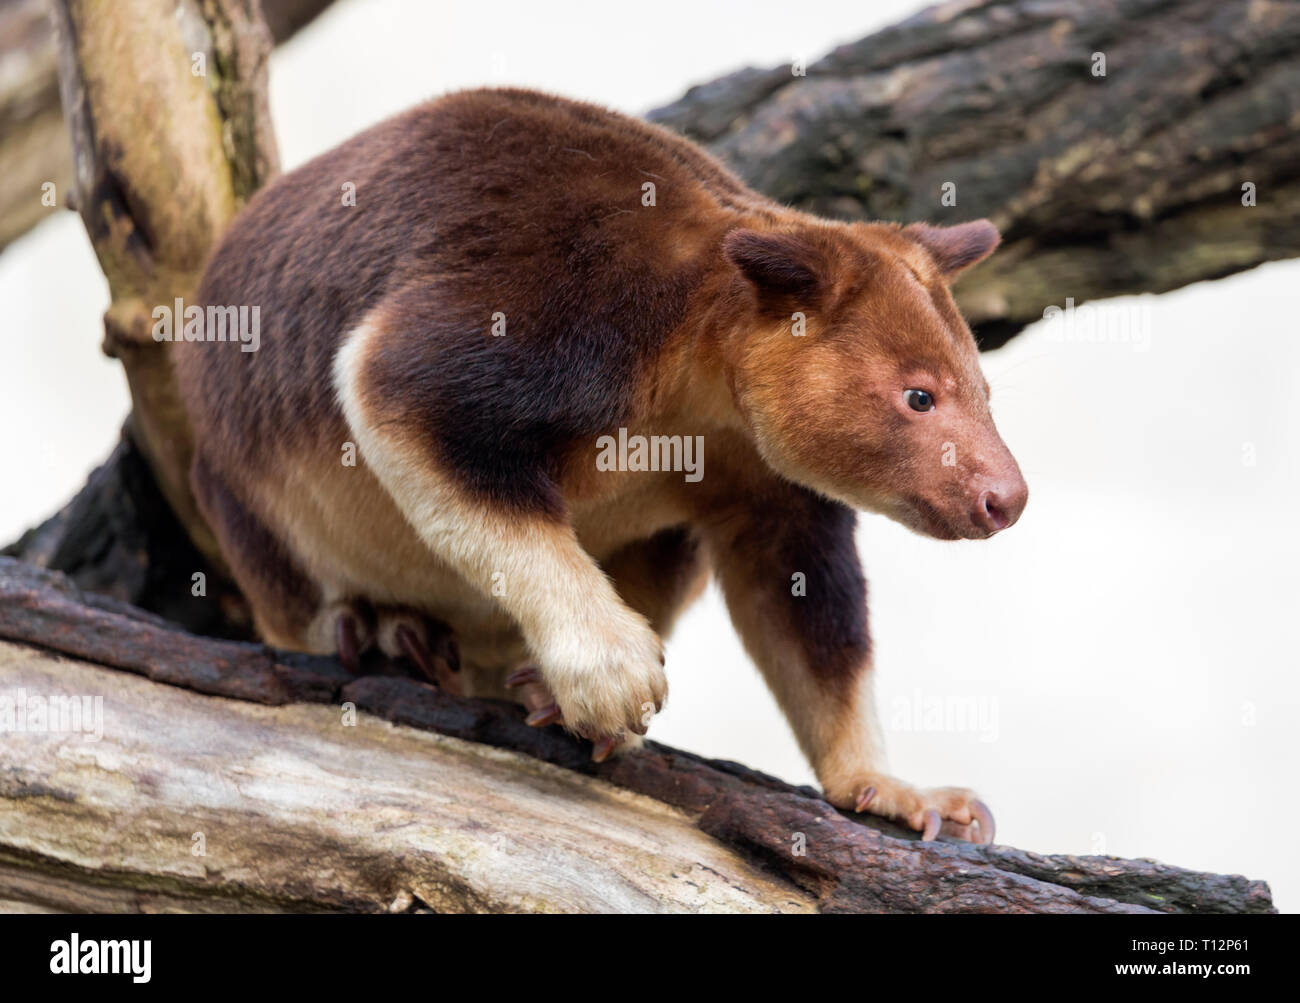 Close up view of a Goodfellow's tree-kangaroo (Dendrolagus goodfellowi) - Stock Image